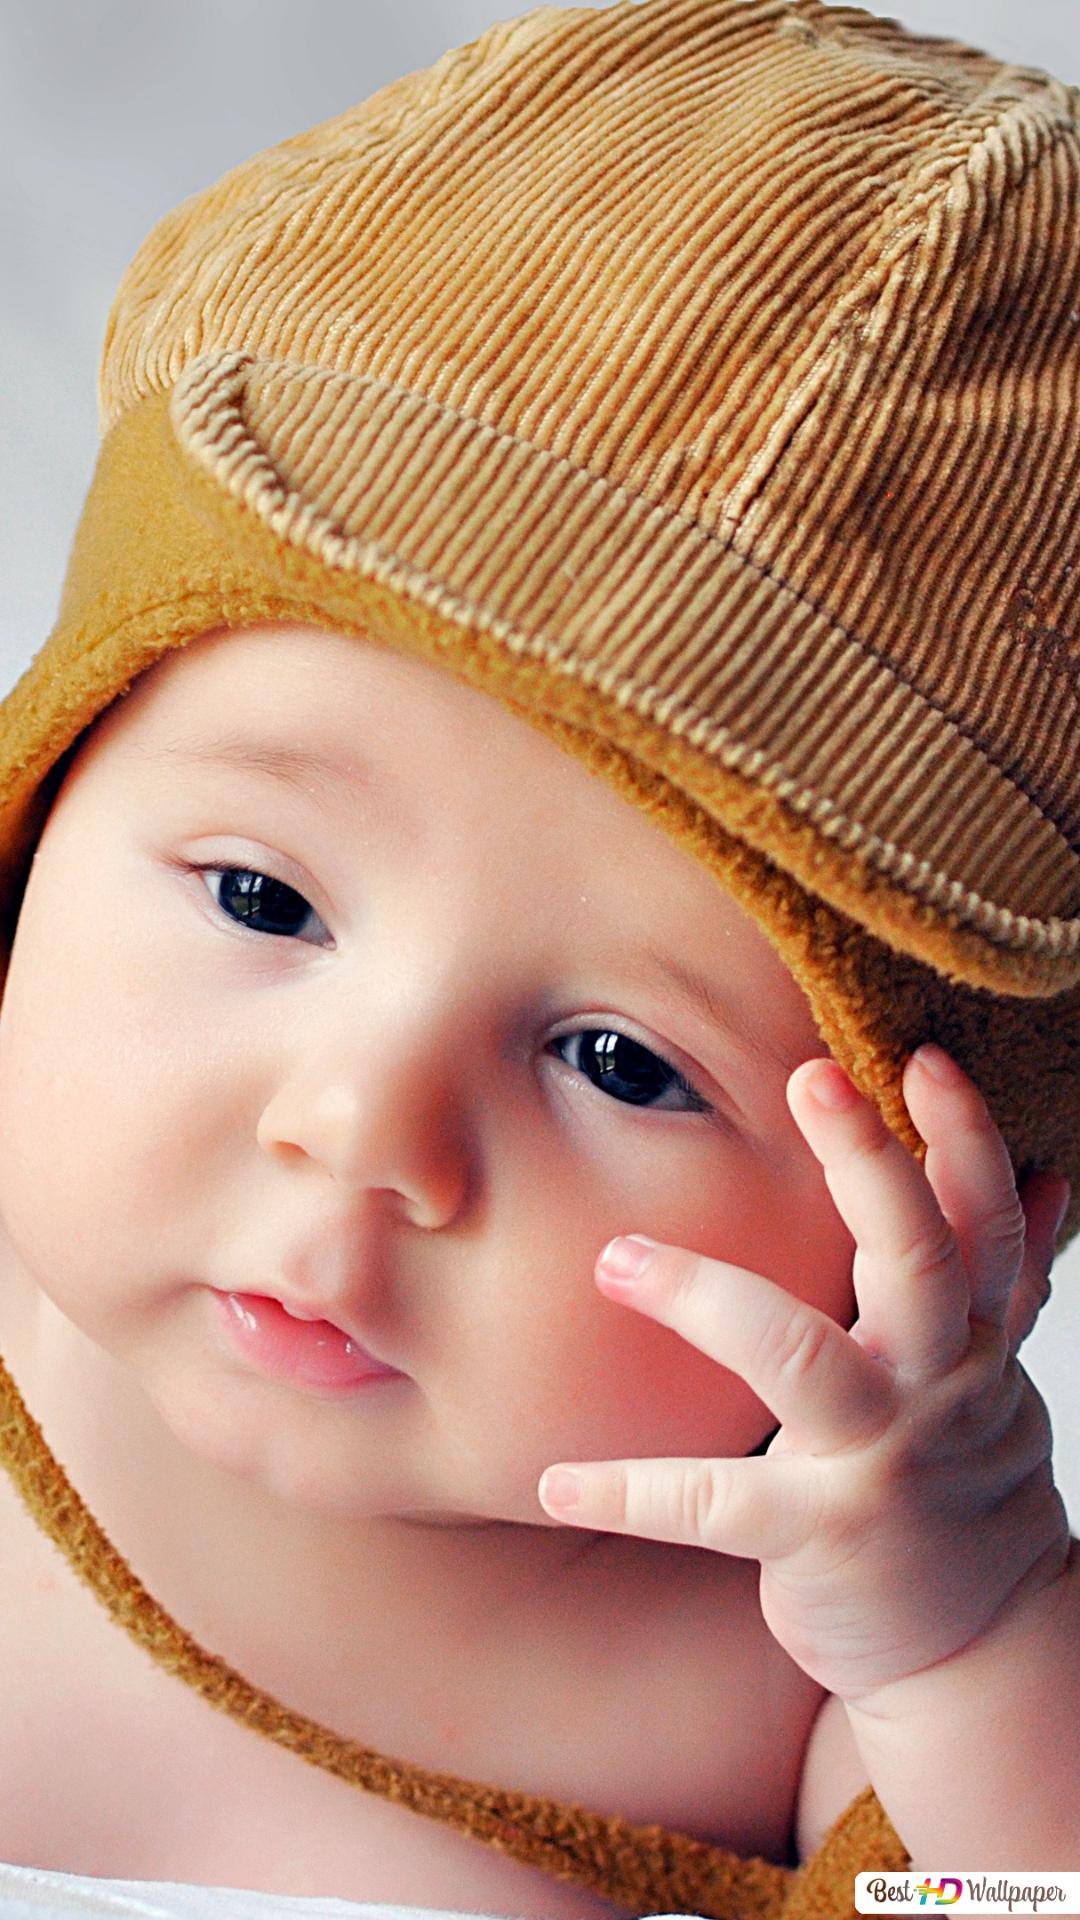 wallpaper iphone cute baby images cute girly wallpapers for iphone rh ridhojokio82 blogspot com